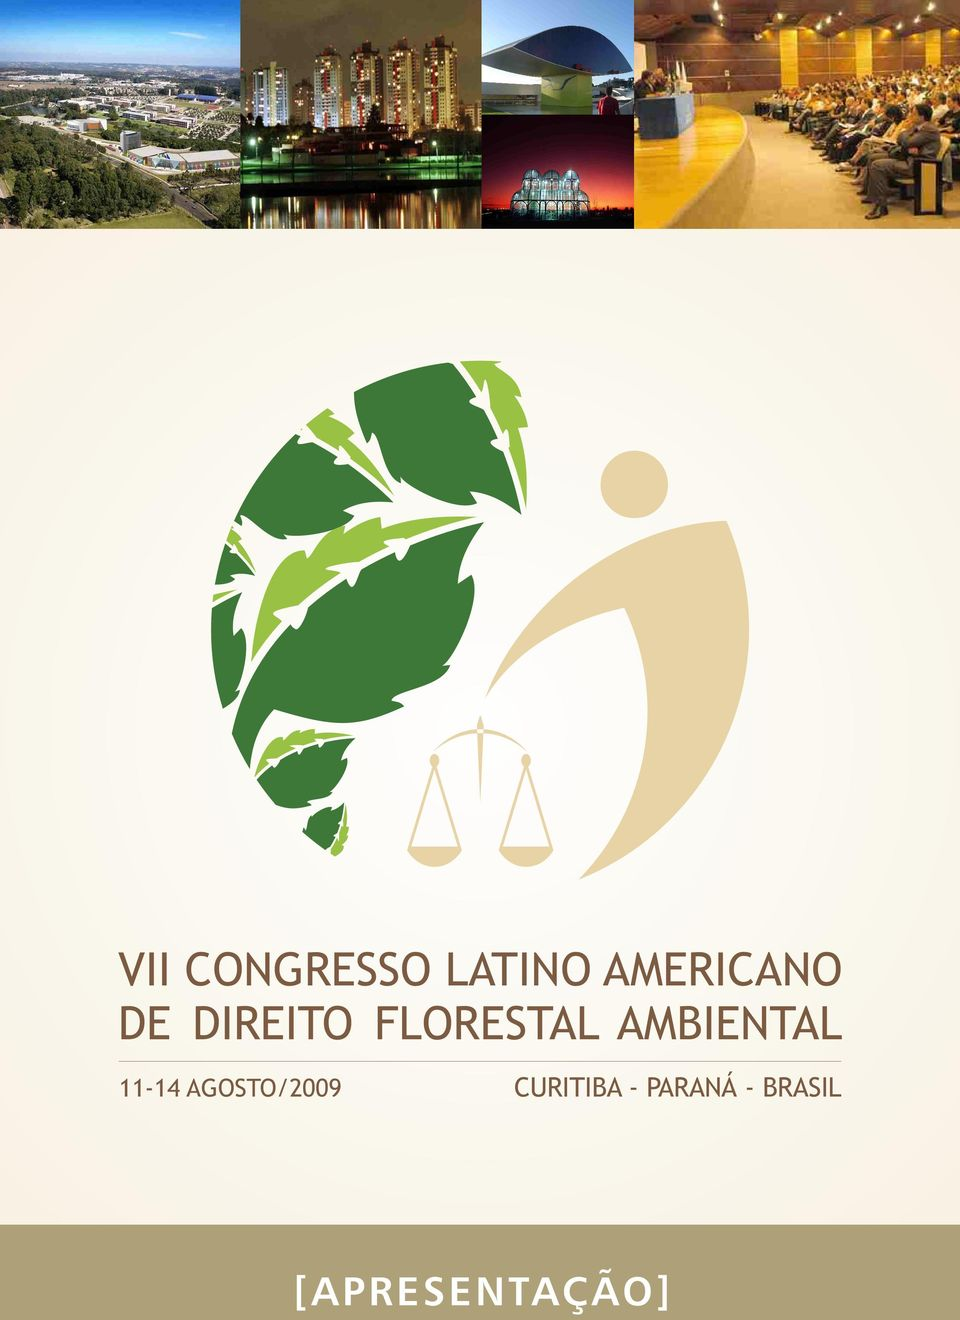 FLRESTAL AMBIENTAL 11-14